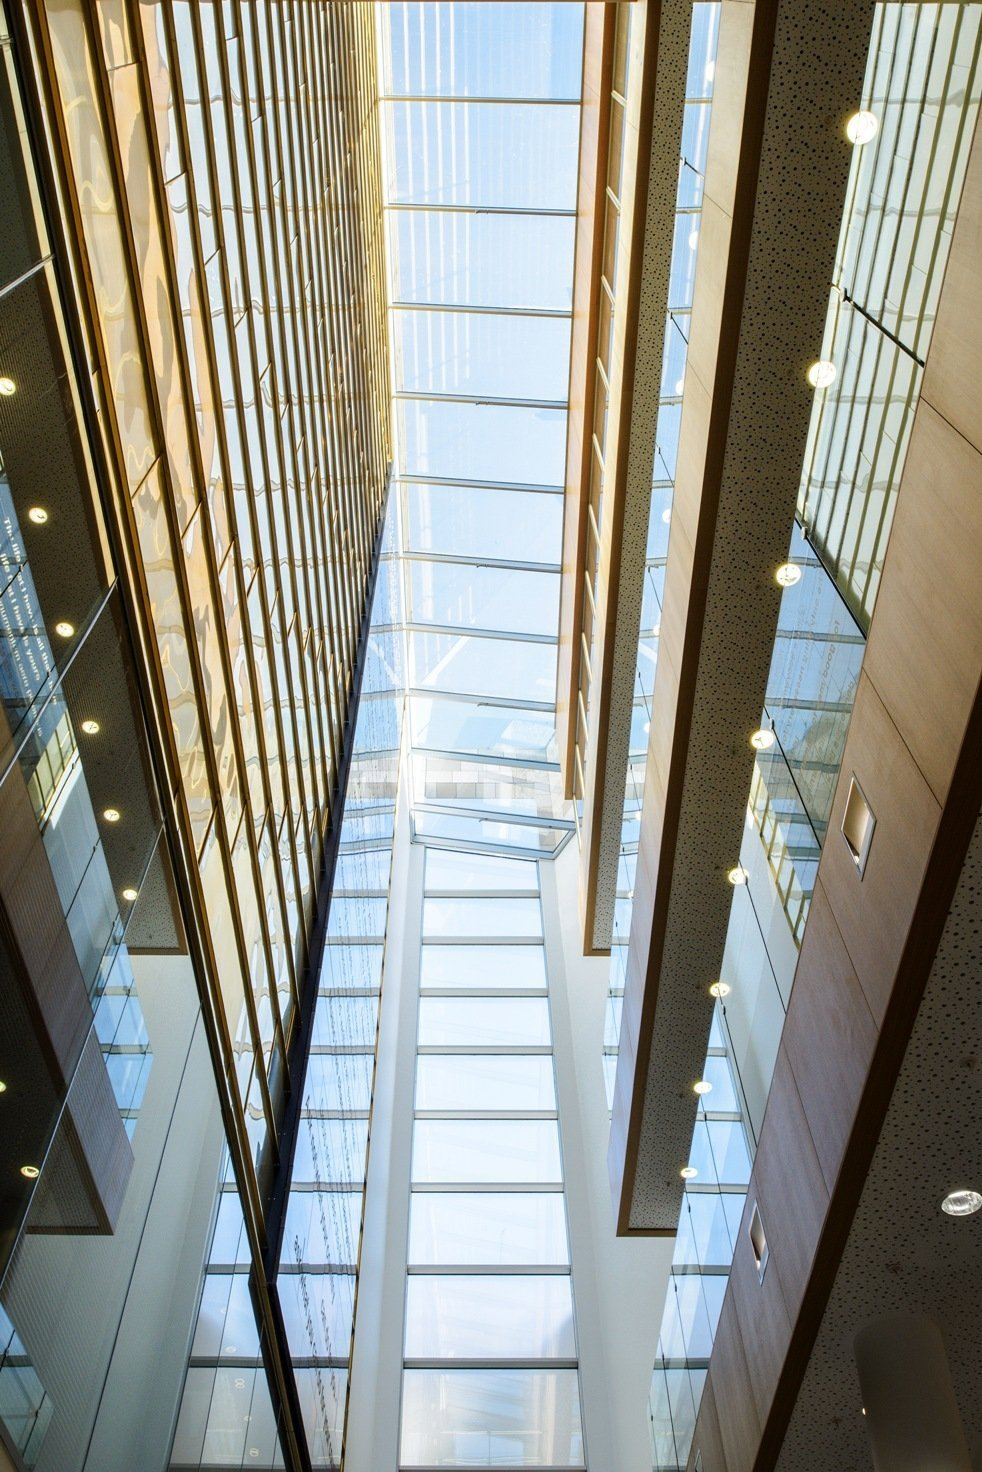 City of Liverpool Library opens up with Reynears Architectural Systems